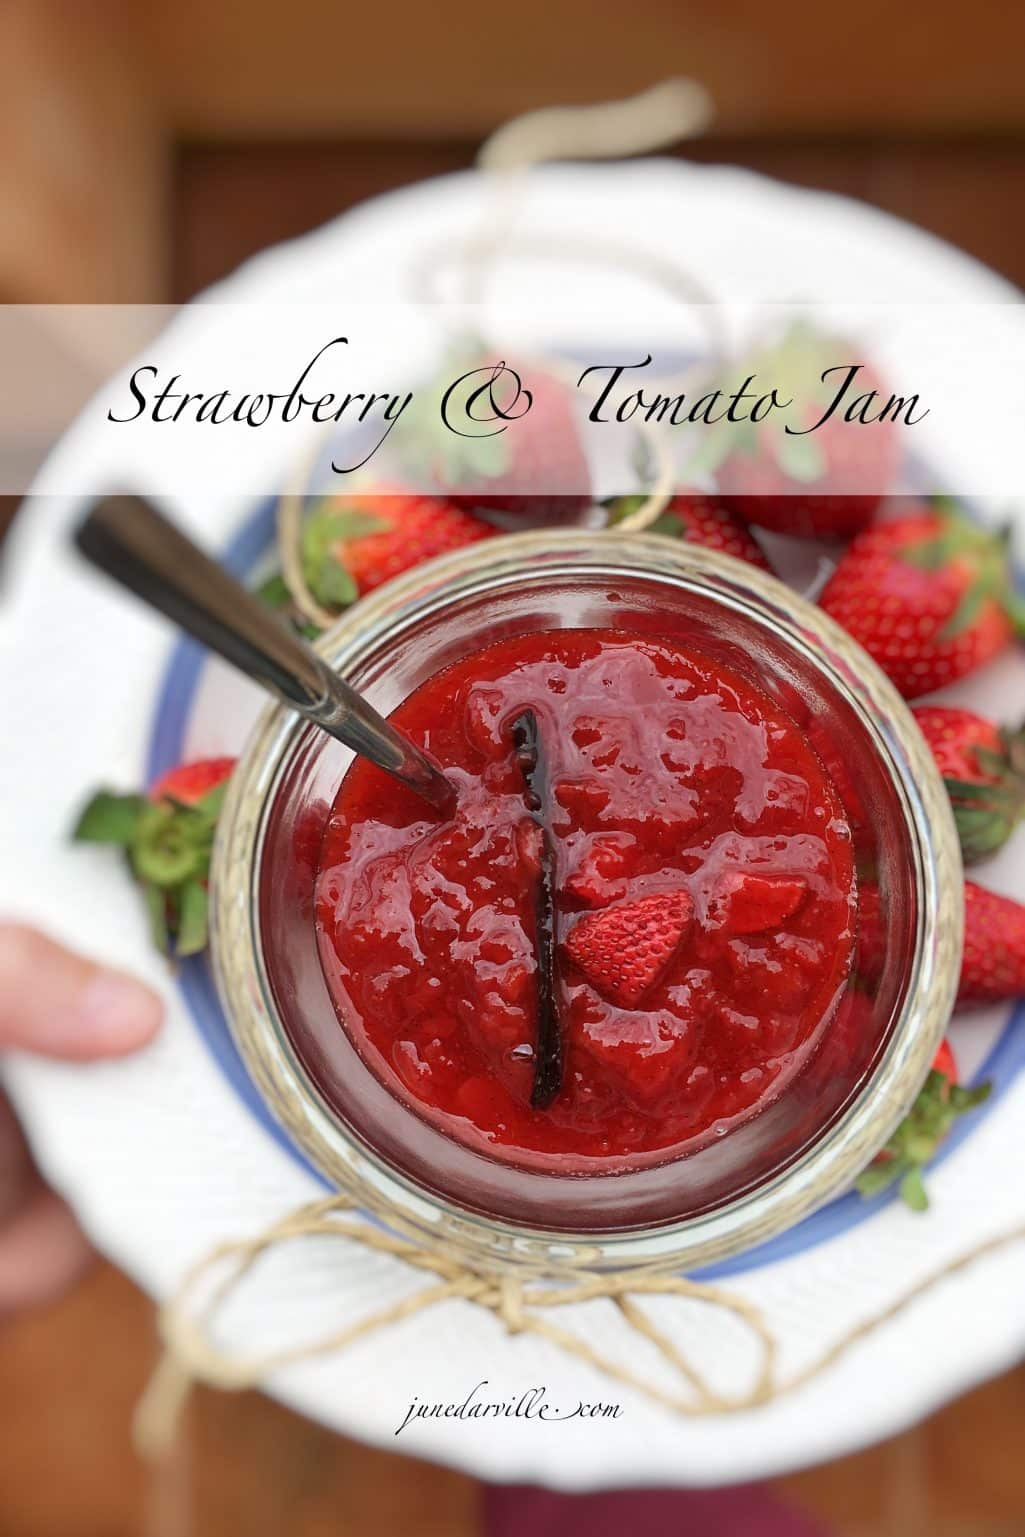 Never made a fruit jam before? Then start off with this very simple strawberry tomato jam with vanilla bean! Great on sandwiches or desserts...